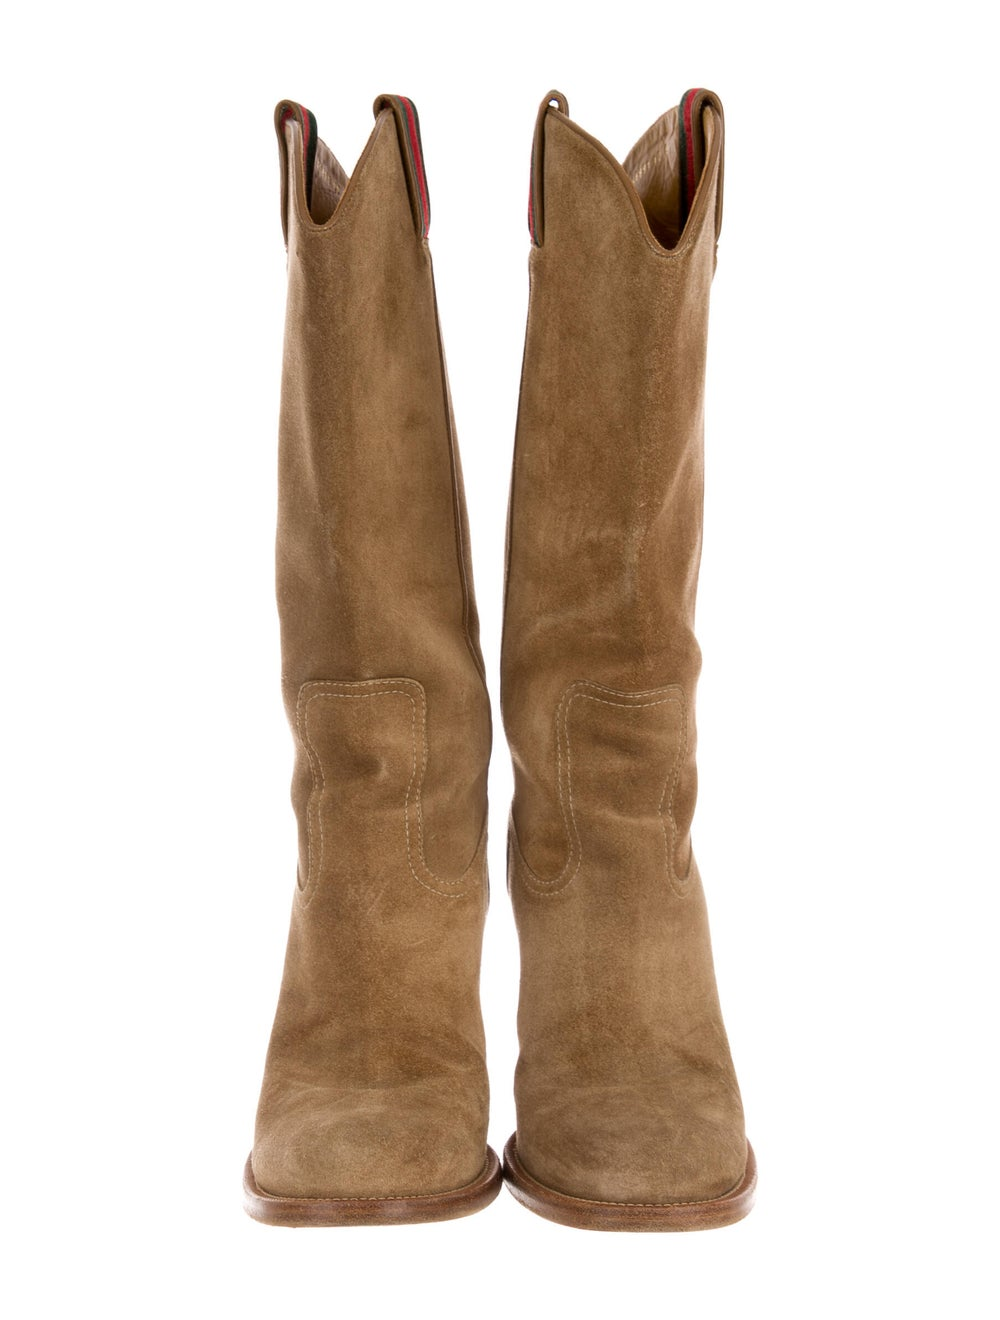 Gucci Suede Western Boots - image 3